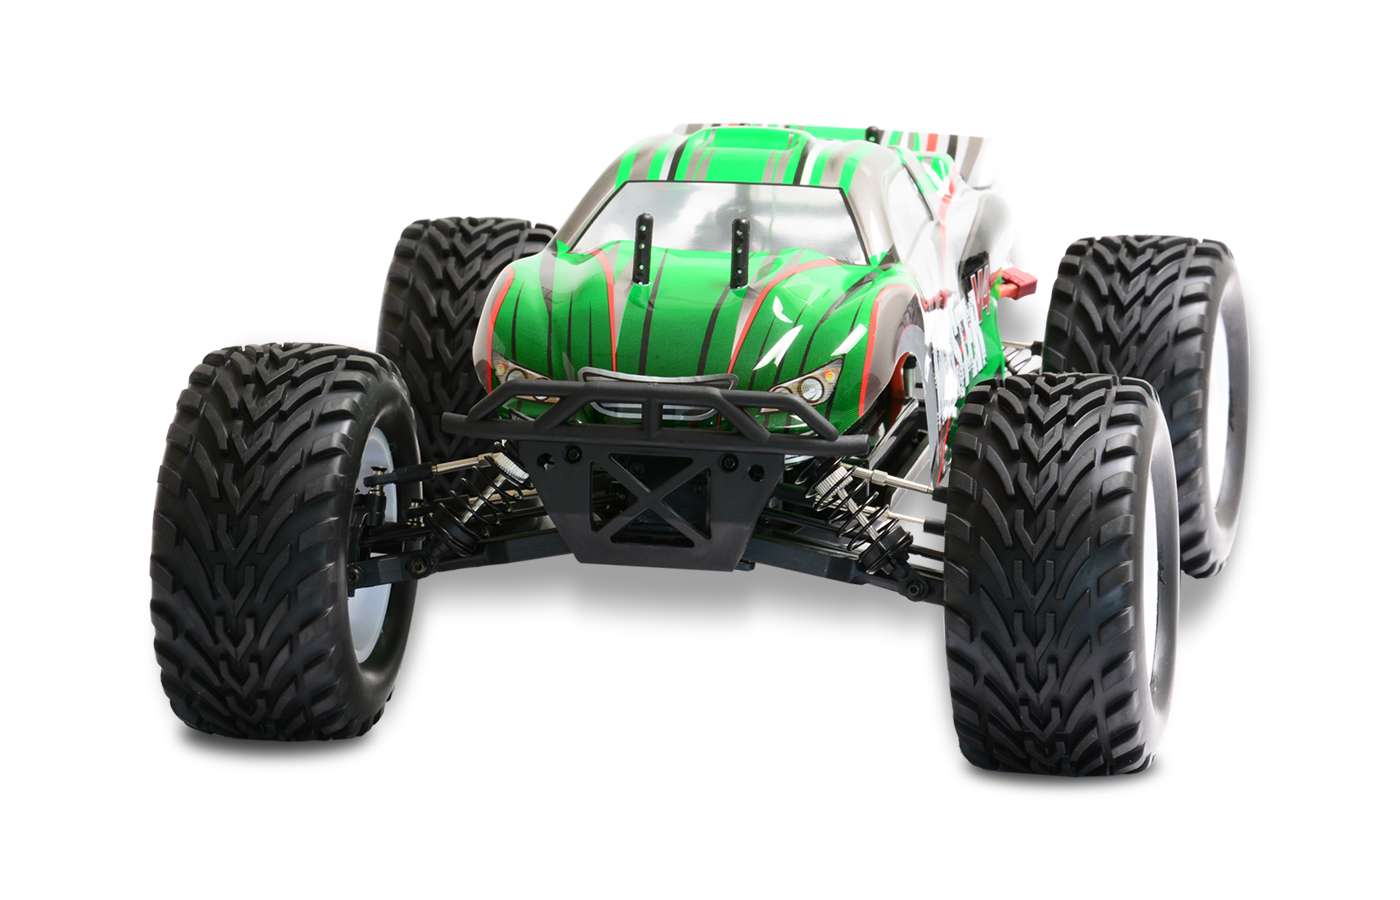 MODSTER V4 furthermore Ford Raptor Drifts And Jumps Track With Off Road Prerunner Truck in addition Traxxas Bandit Review together with HIMOTO RC Car Parts List likewise PUJwneqoqtM. on brushed vs brushless rc cars